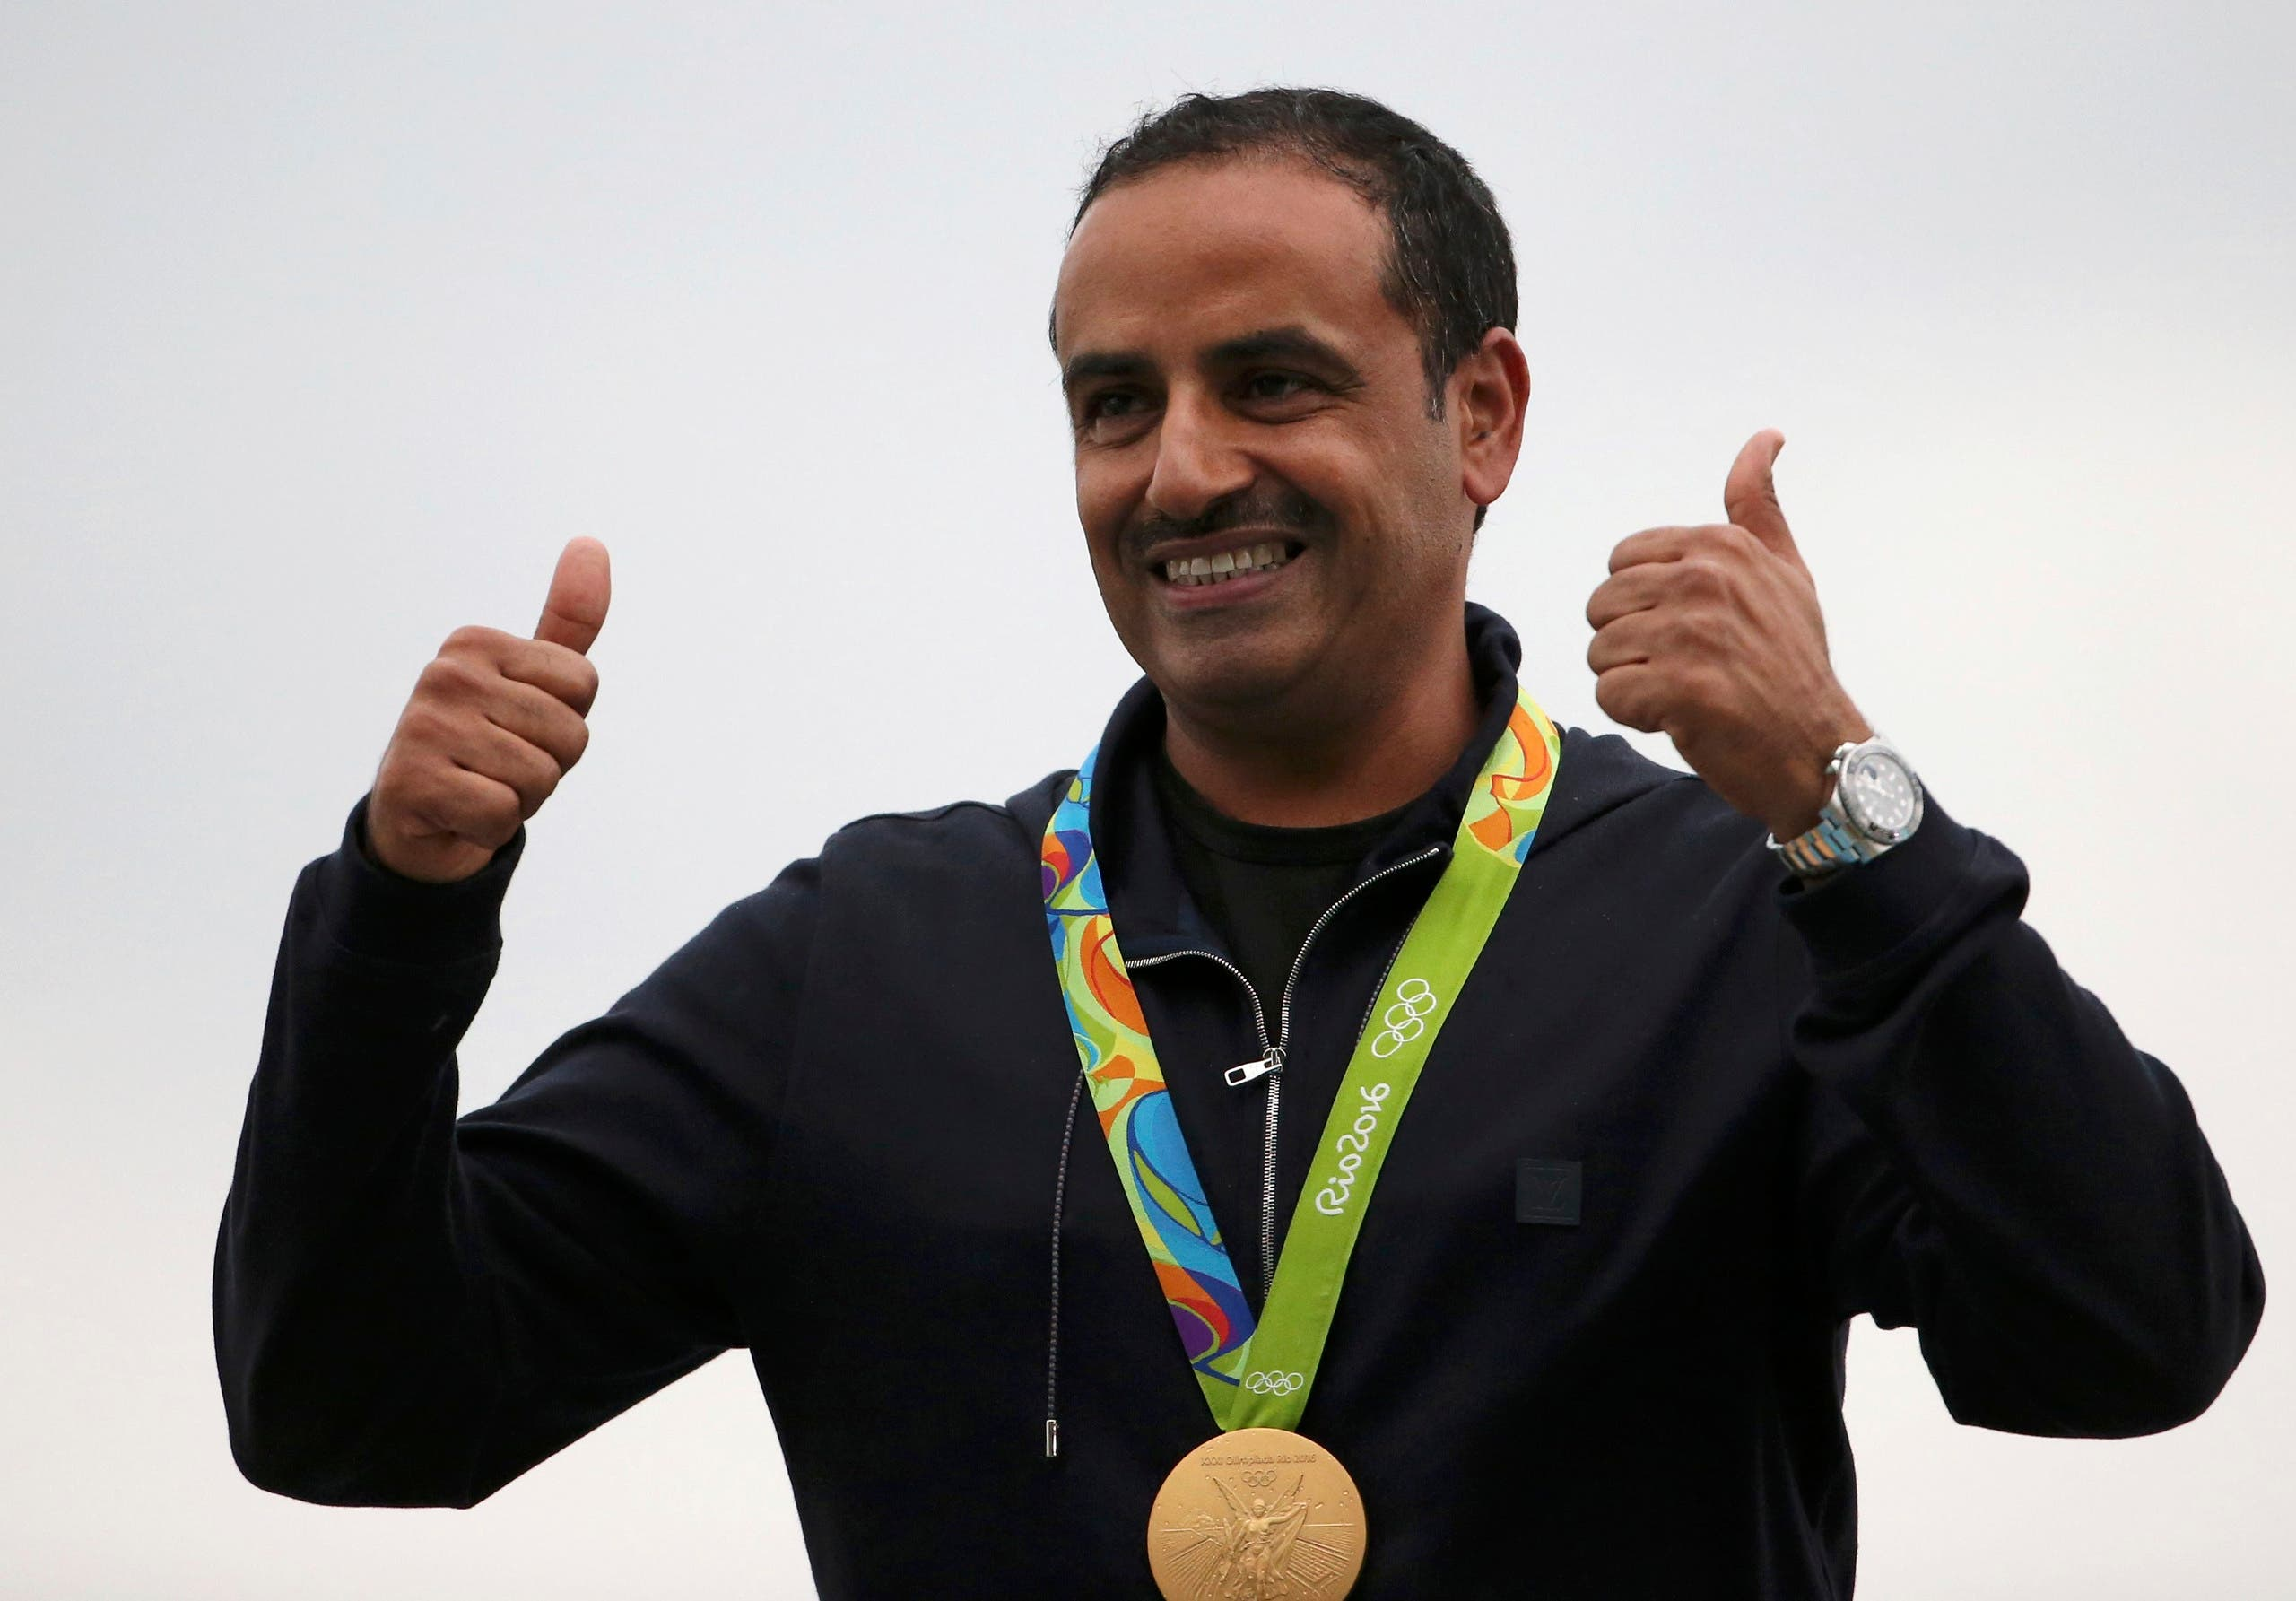 Fehaid Aldeehani (KUW) of Independent Olympic Athlete poses with his gold medal. REUTERS